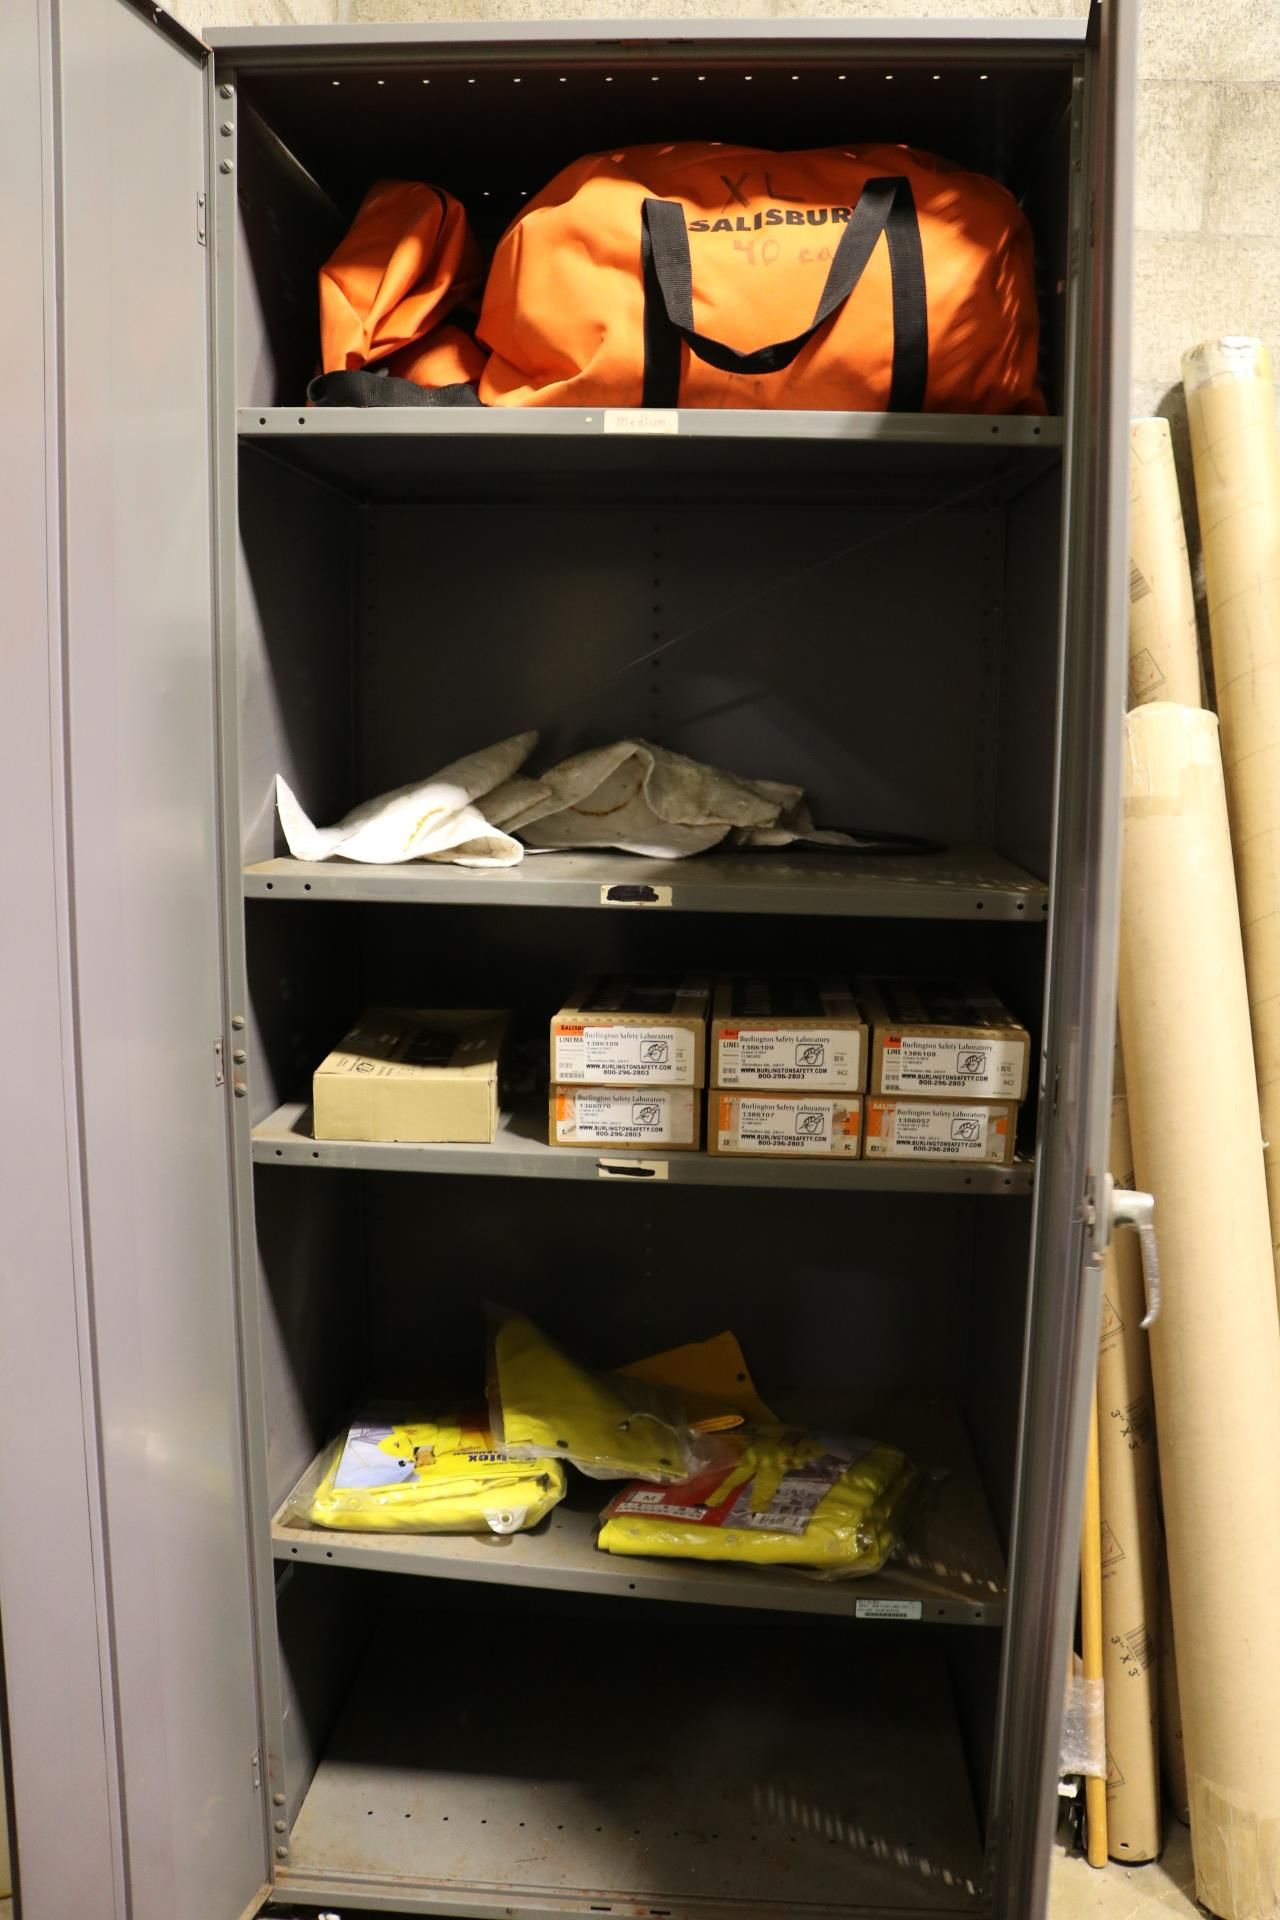 Lot 2 - 2-DOOR STORAGE CABINET W/ CONTENTS: SALISBURY ELECTRICAL SAFETY PRODUCTS, GLOVES, ETC.